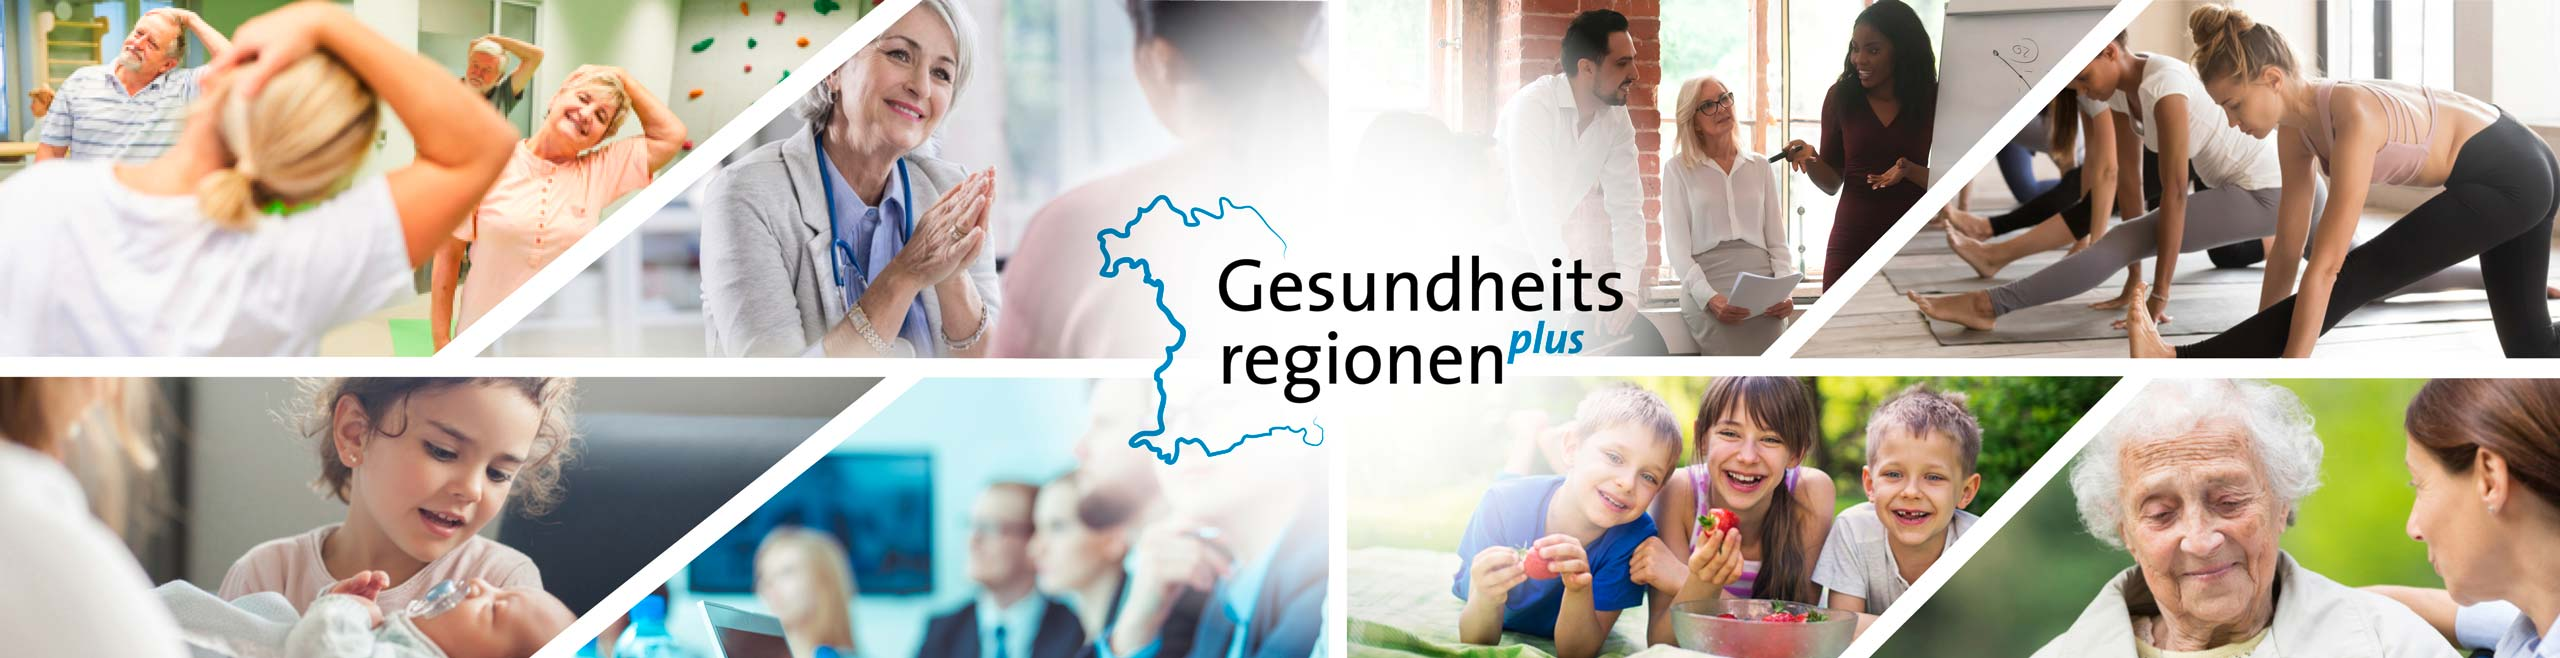 Gesundheitsregionen plus - Illustration